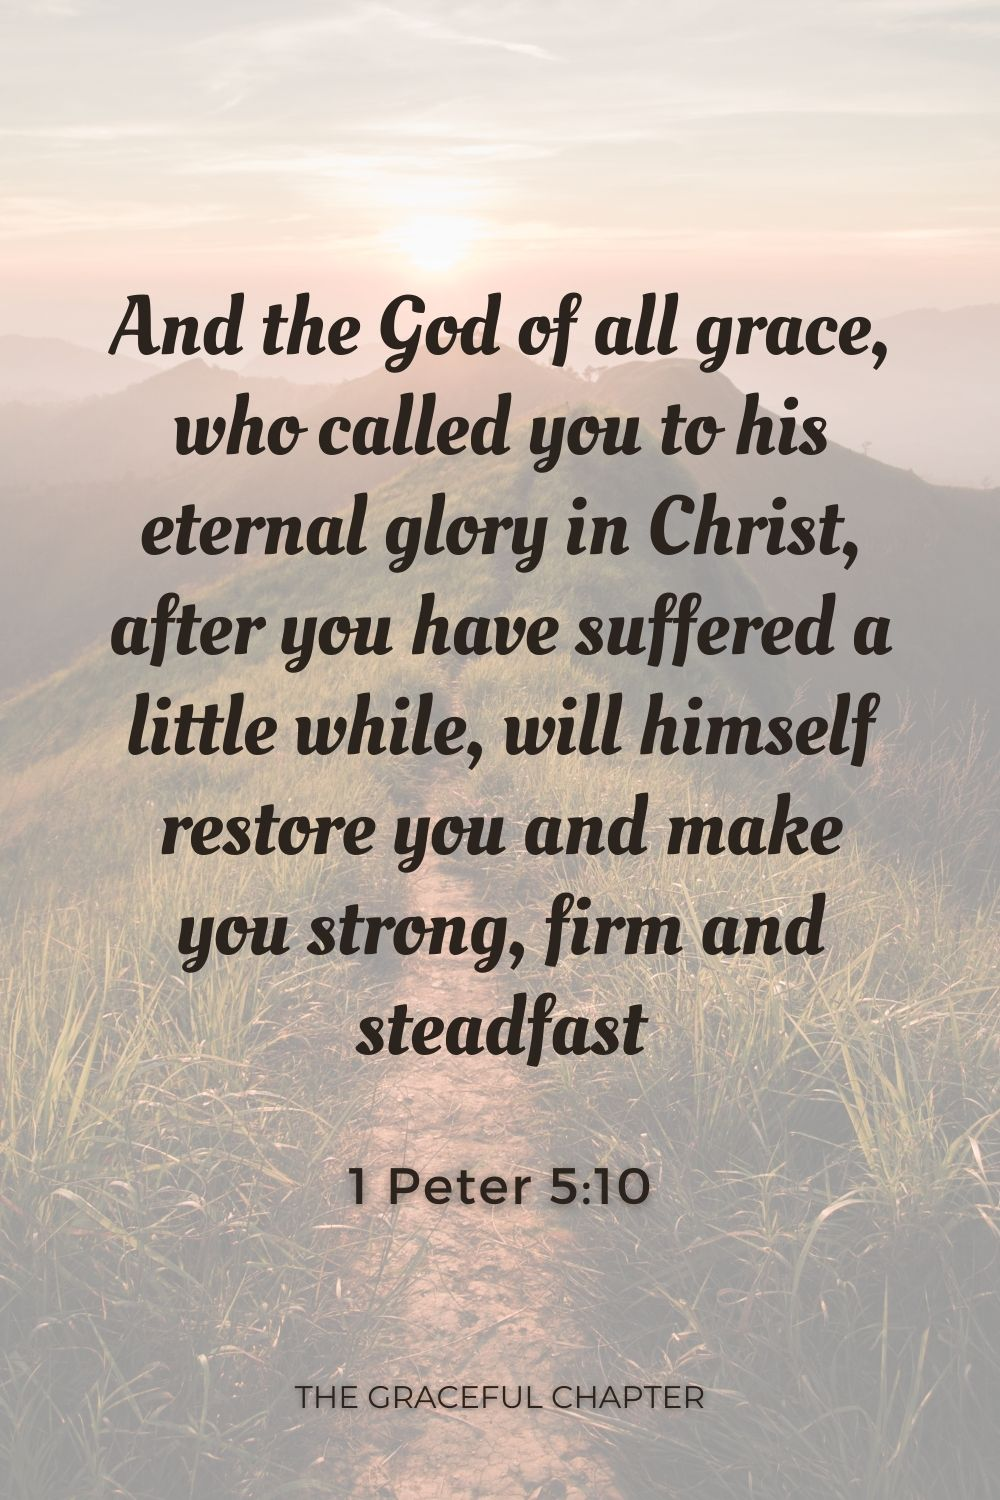 And the God of all grace, who called you to his eternal glory in Christ, after you have suffered a little while, will himself restore you and make you strong, firm and steadfast 1 Peter 5:10